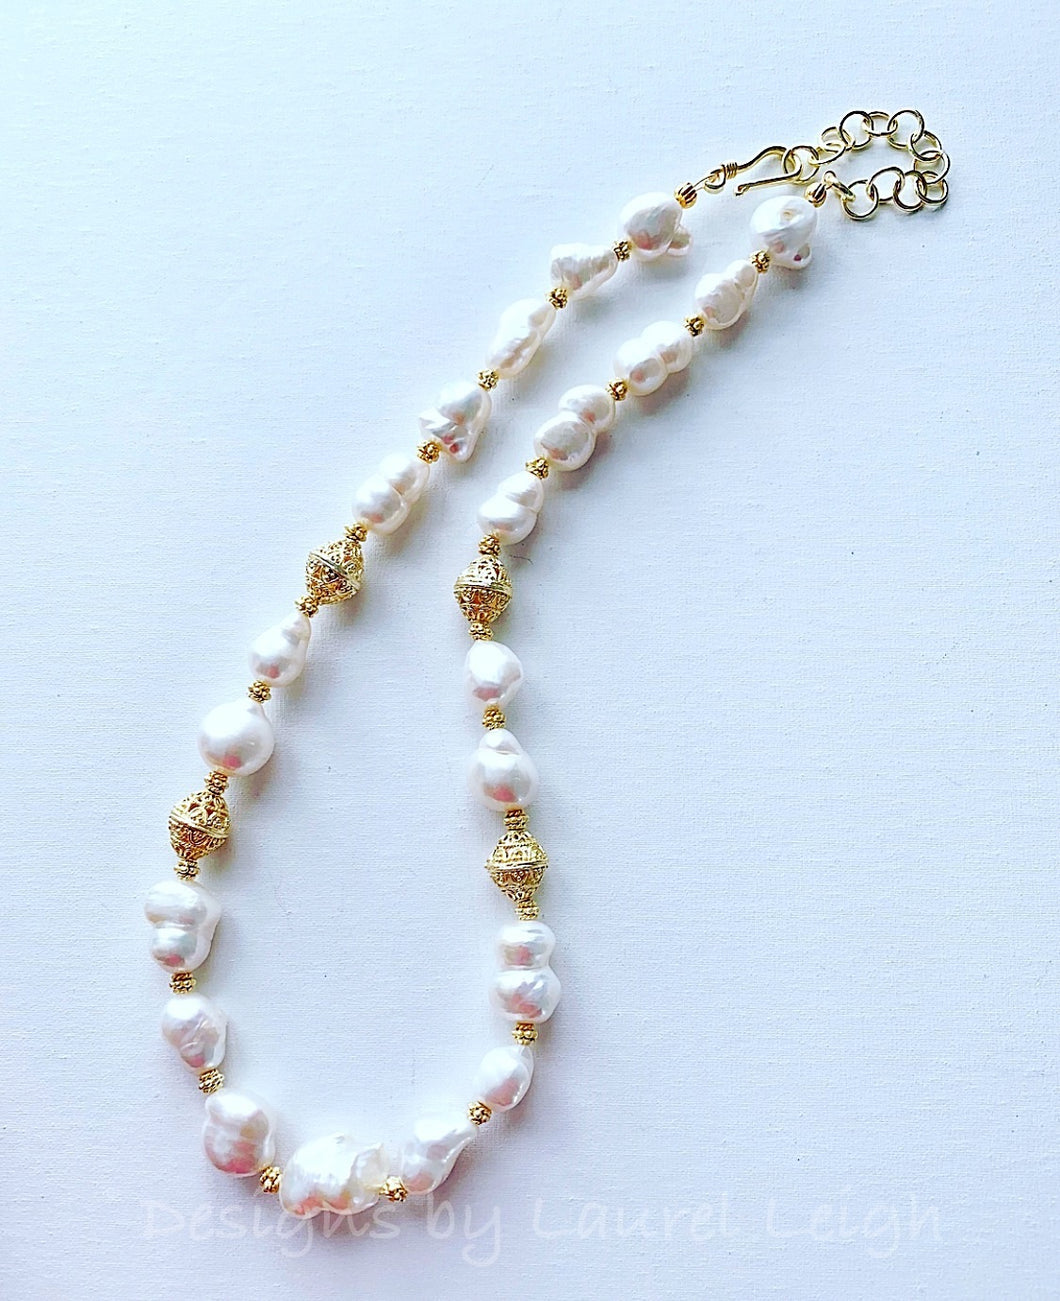 Baroque Pearl and Gold Bead Statement Necklace - Adjustable - Ginger jar